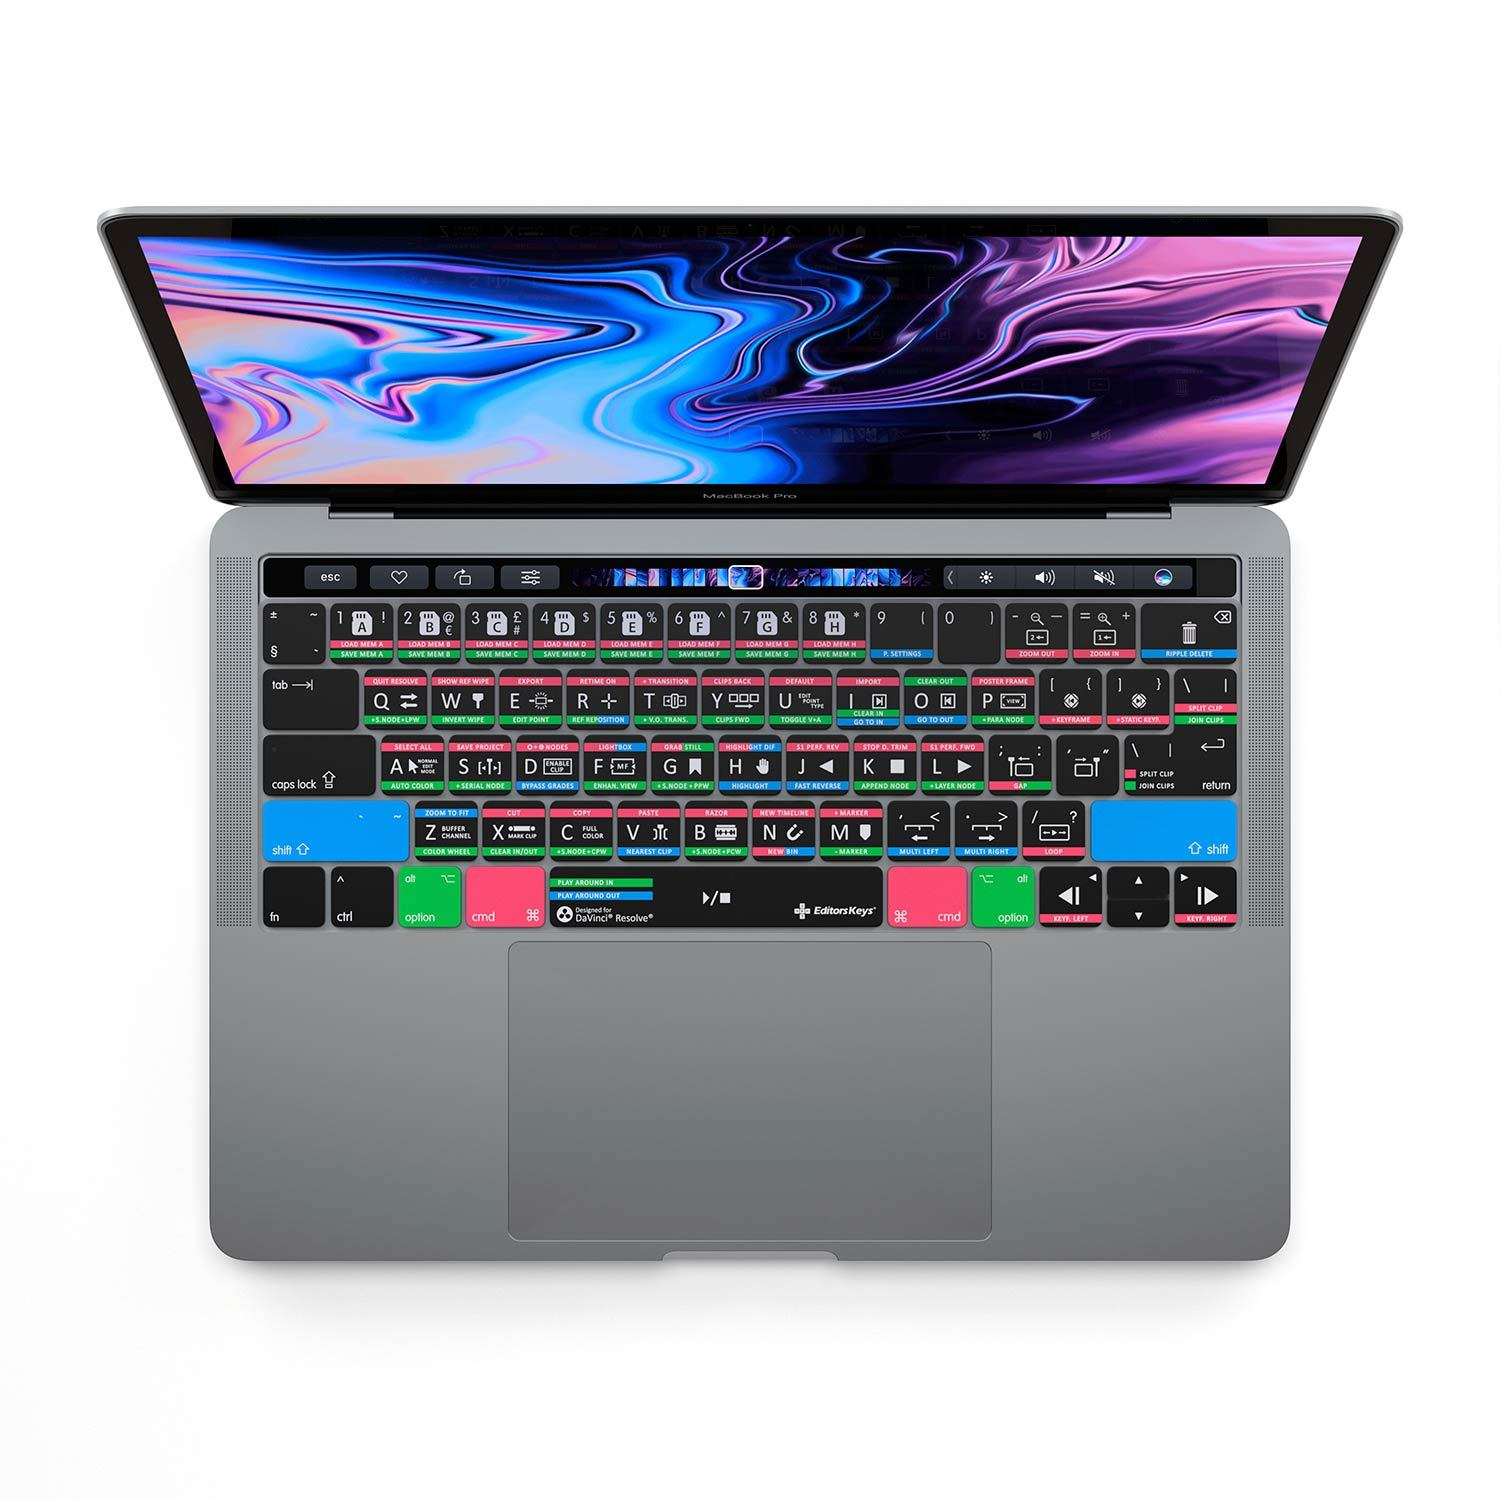 DaVinci Resolve Keyboard Covers for MacBook and iMac